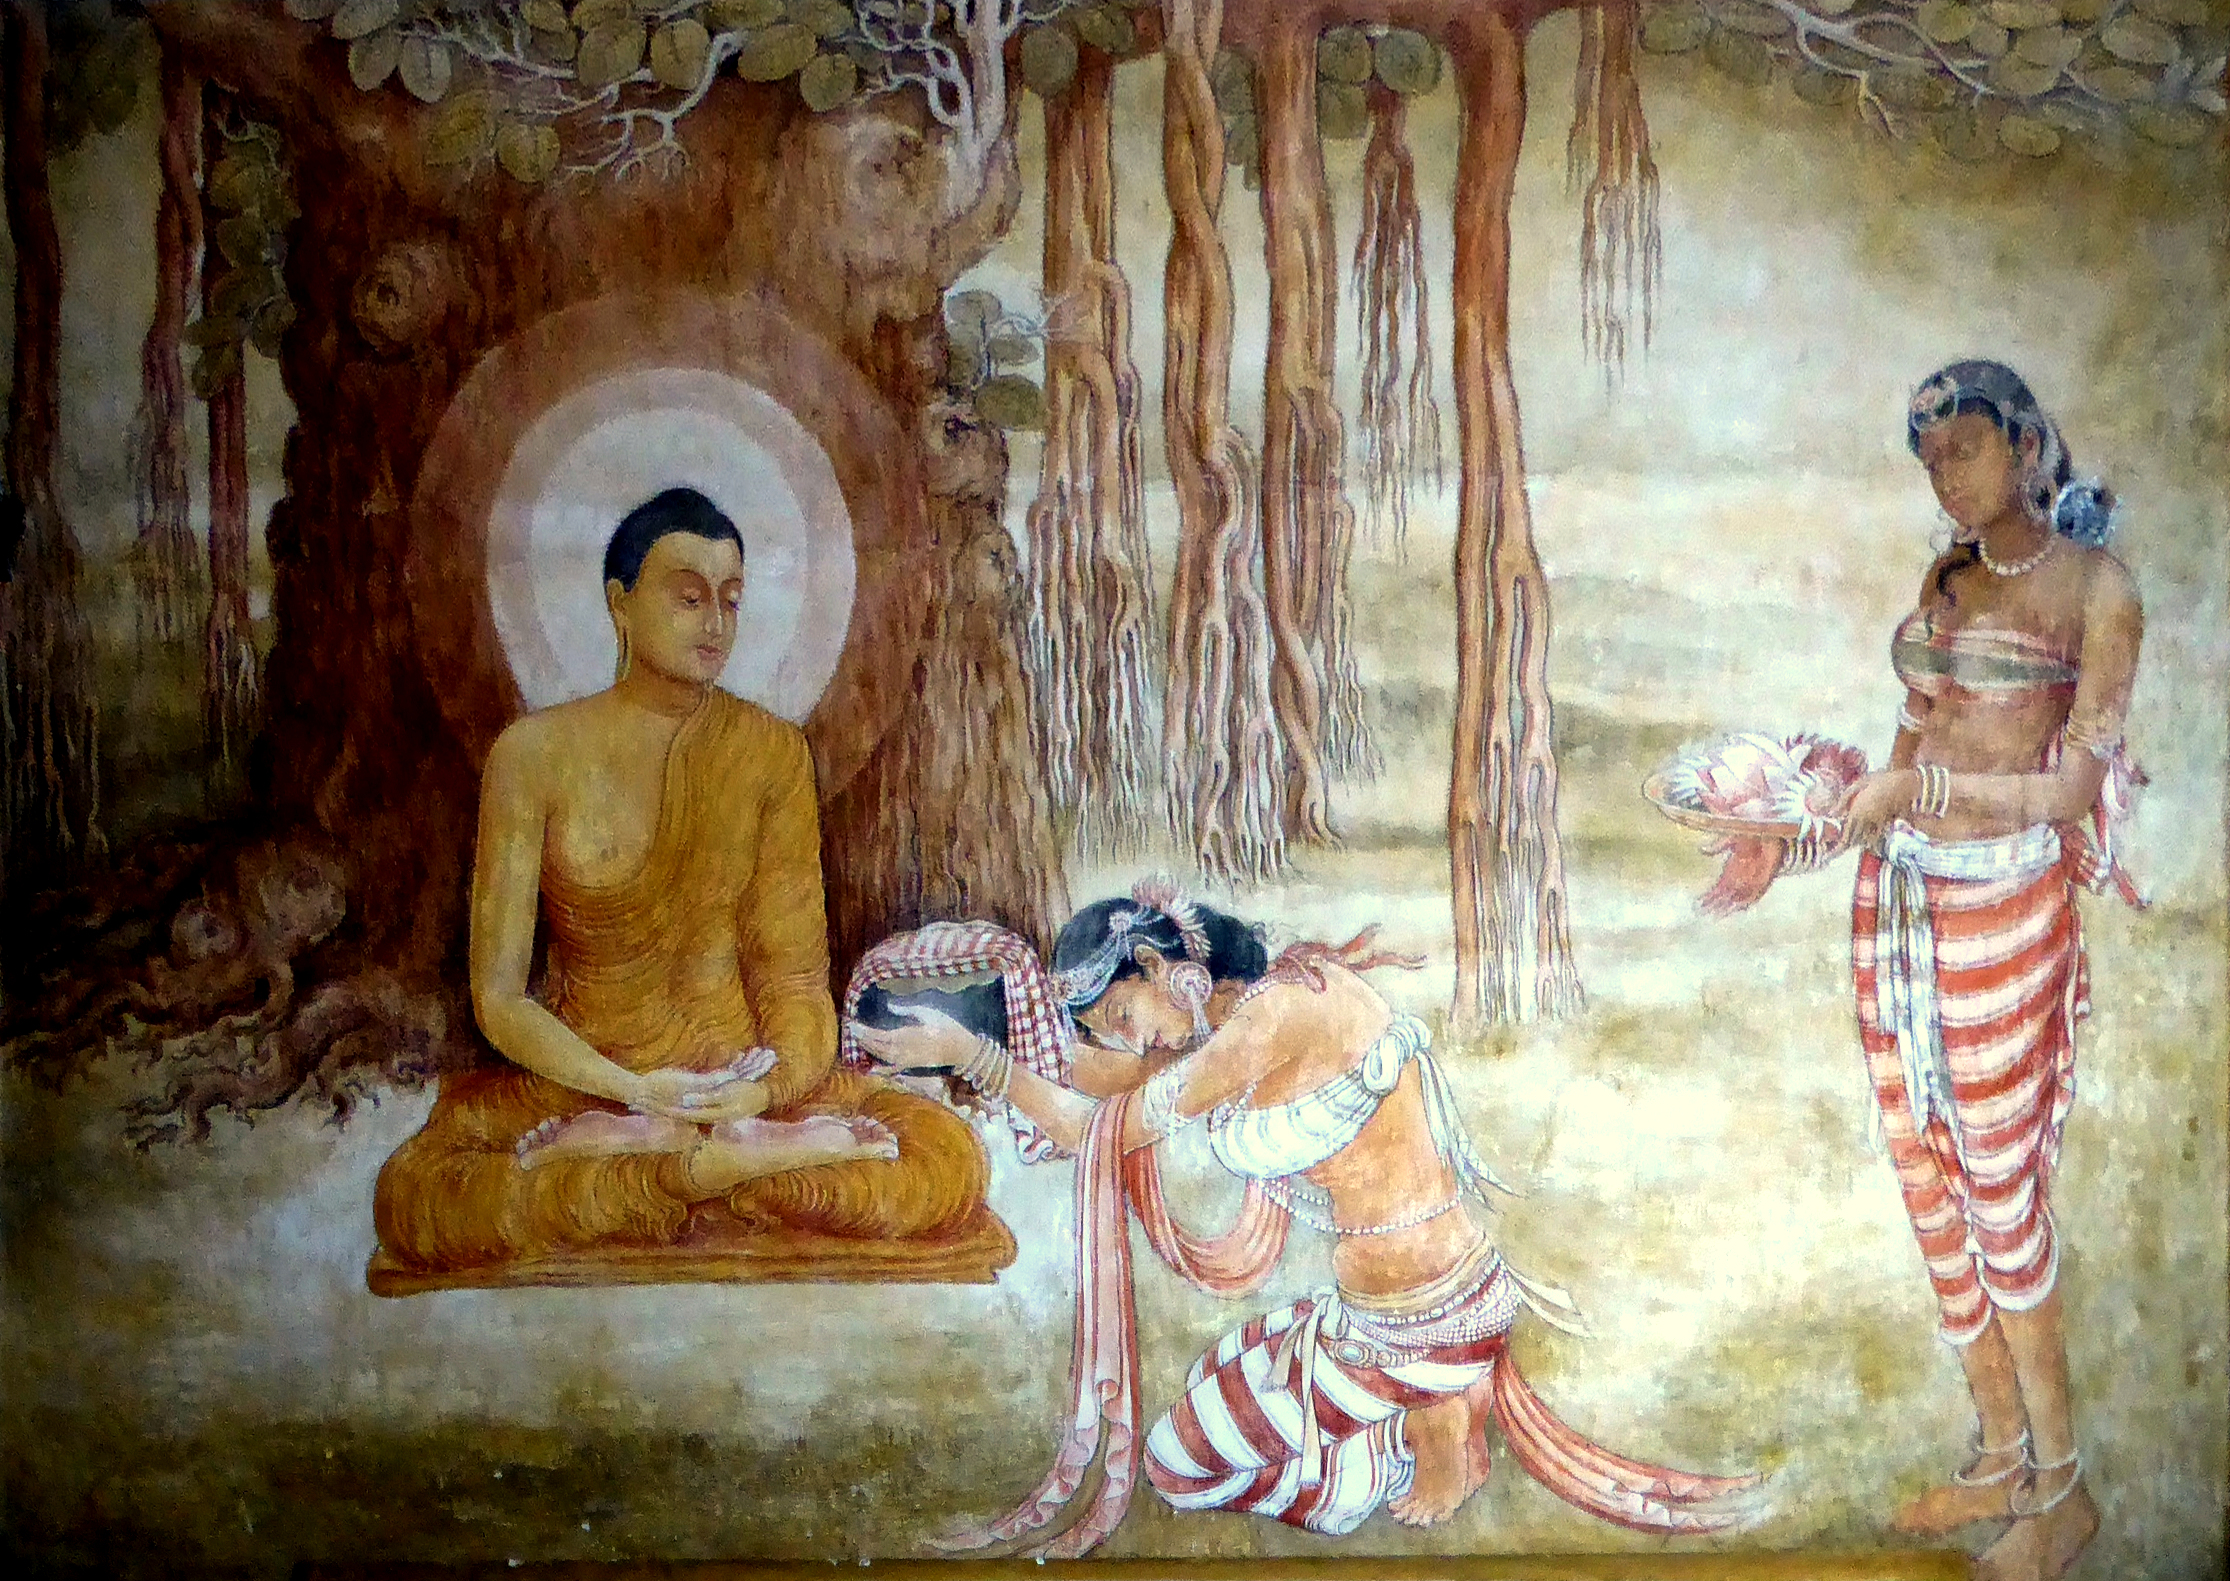 Sujata and the Buddha